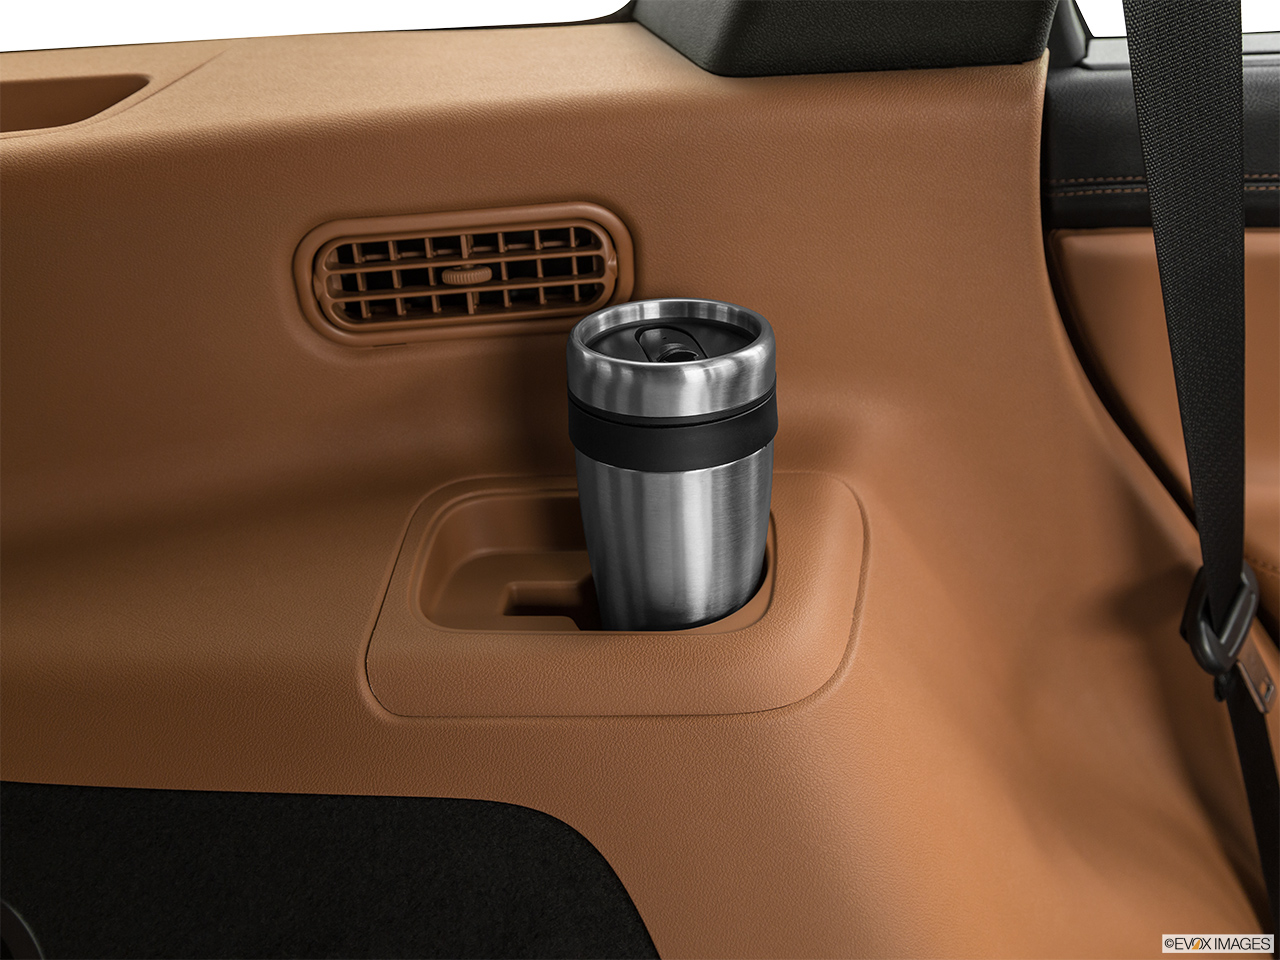 2020 Lincoln Aviator Black Label Third Row side cup holder with coffee prop.